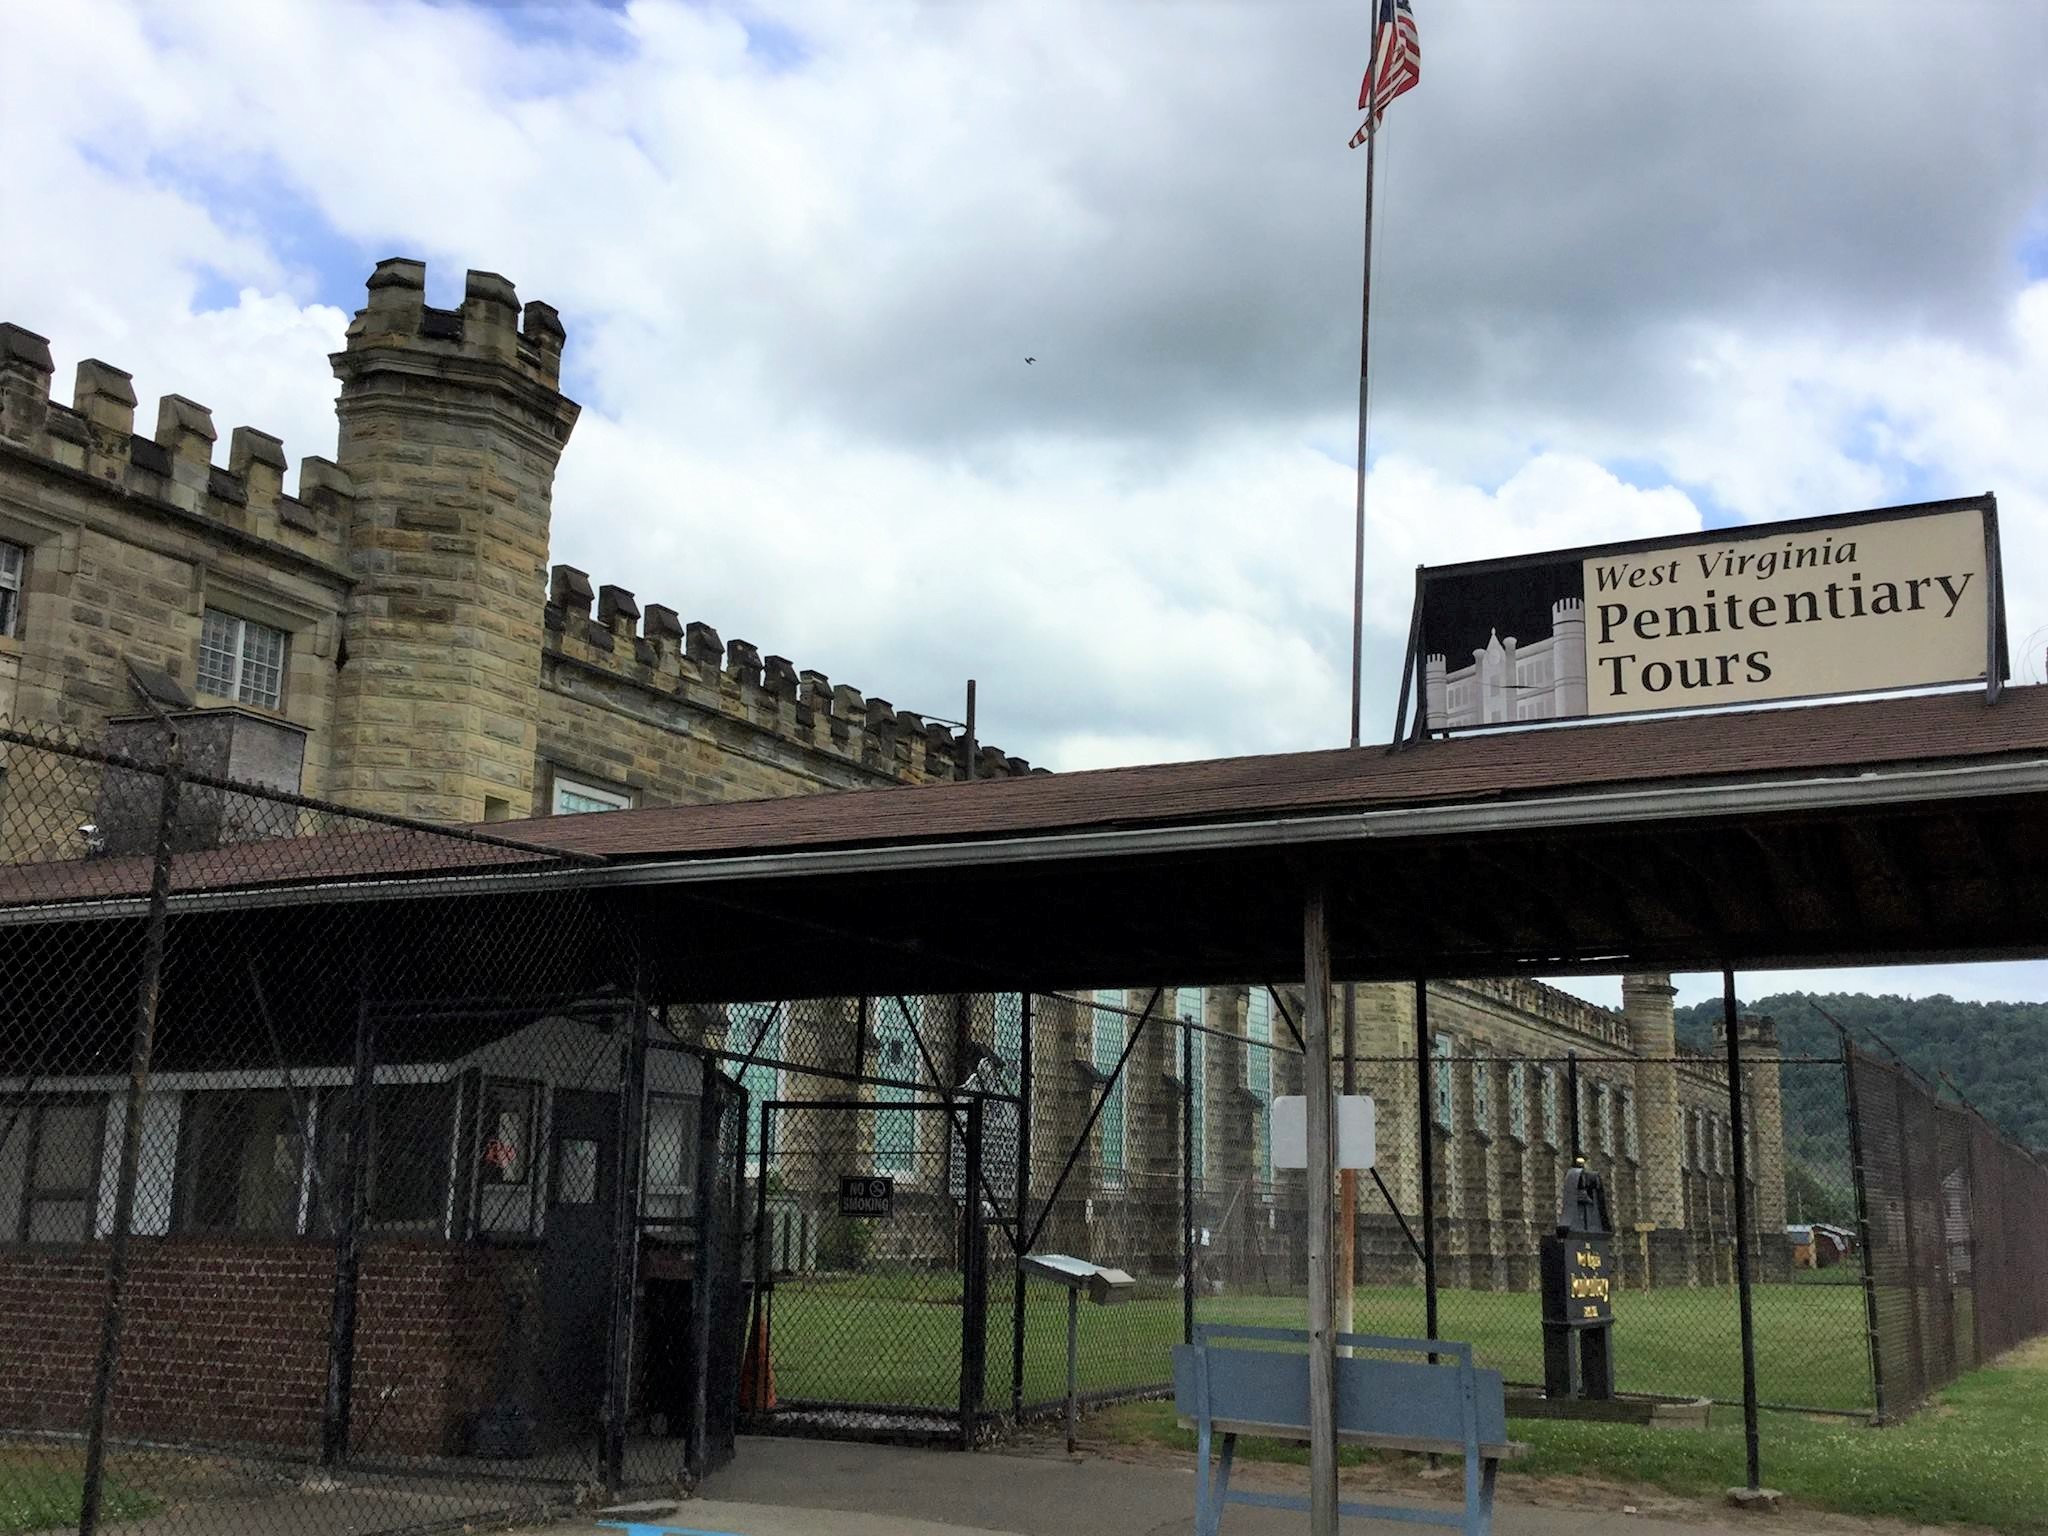 The tour entrance is located on the south end of the penitentiary.